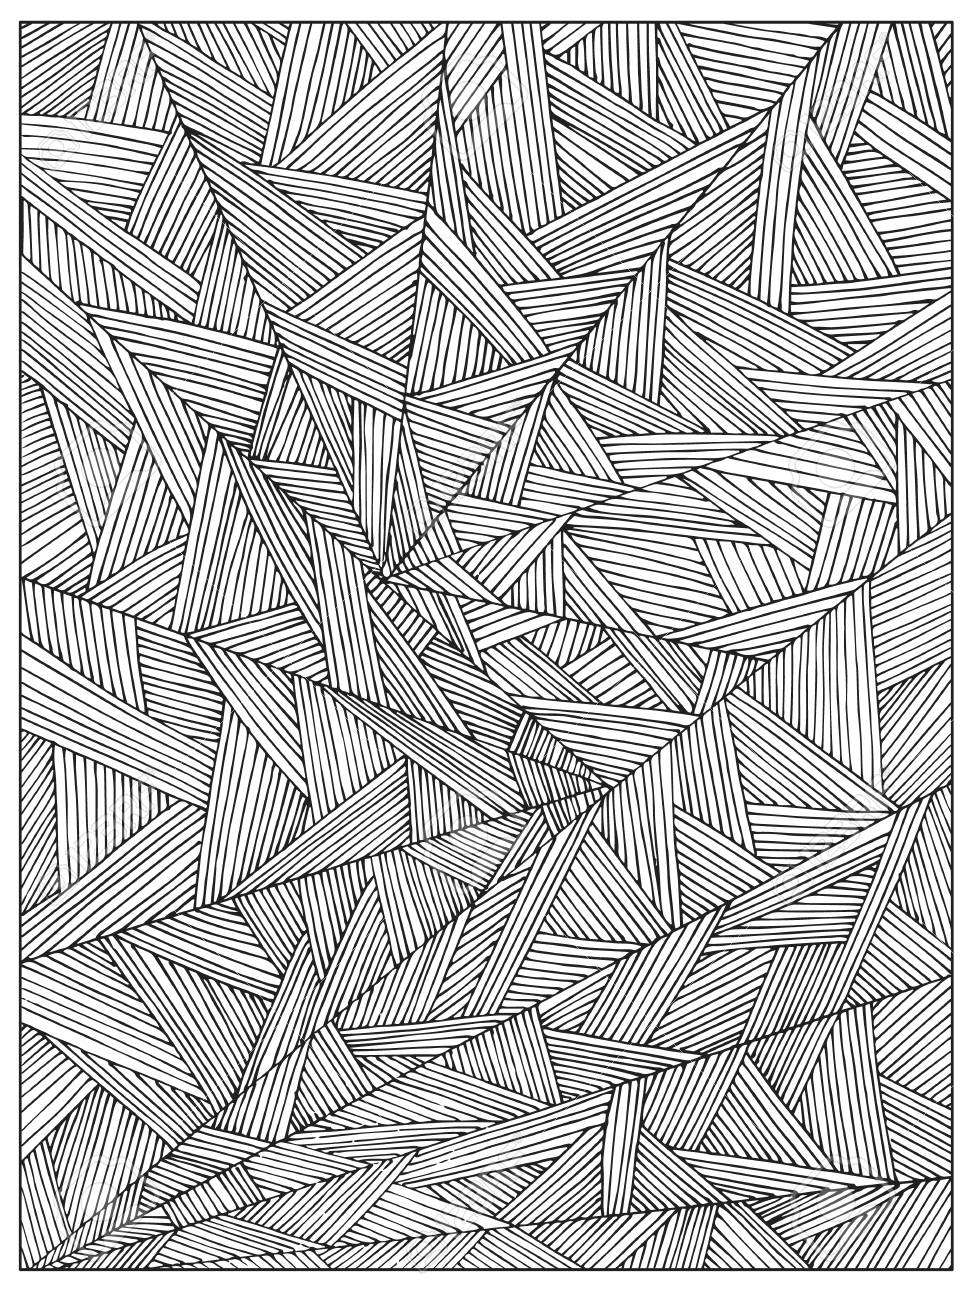 Difficult Uncolored Adult Coloring Book Page With Optical Illusion Royalty Free Cliparts Vectors And Stock Illustration Image 107503045